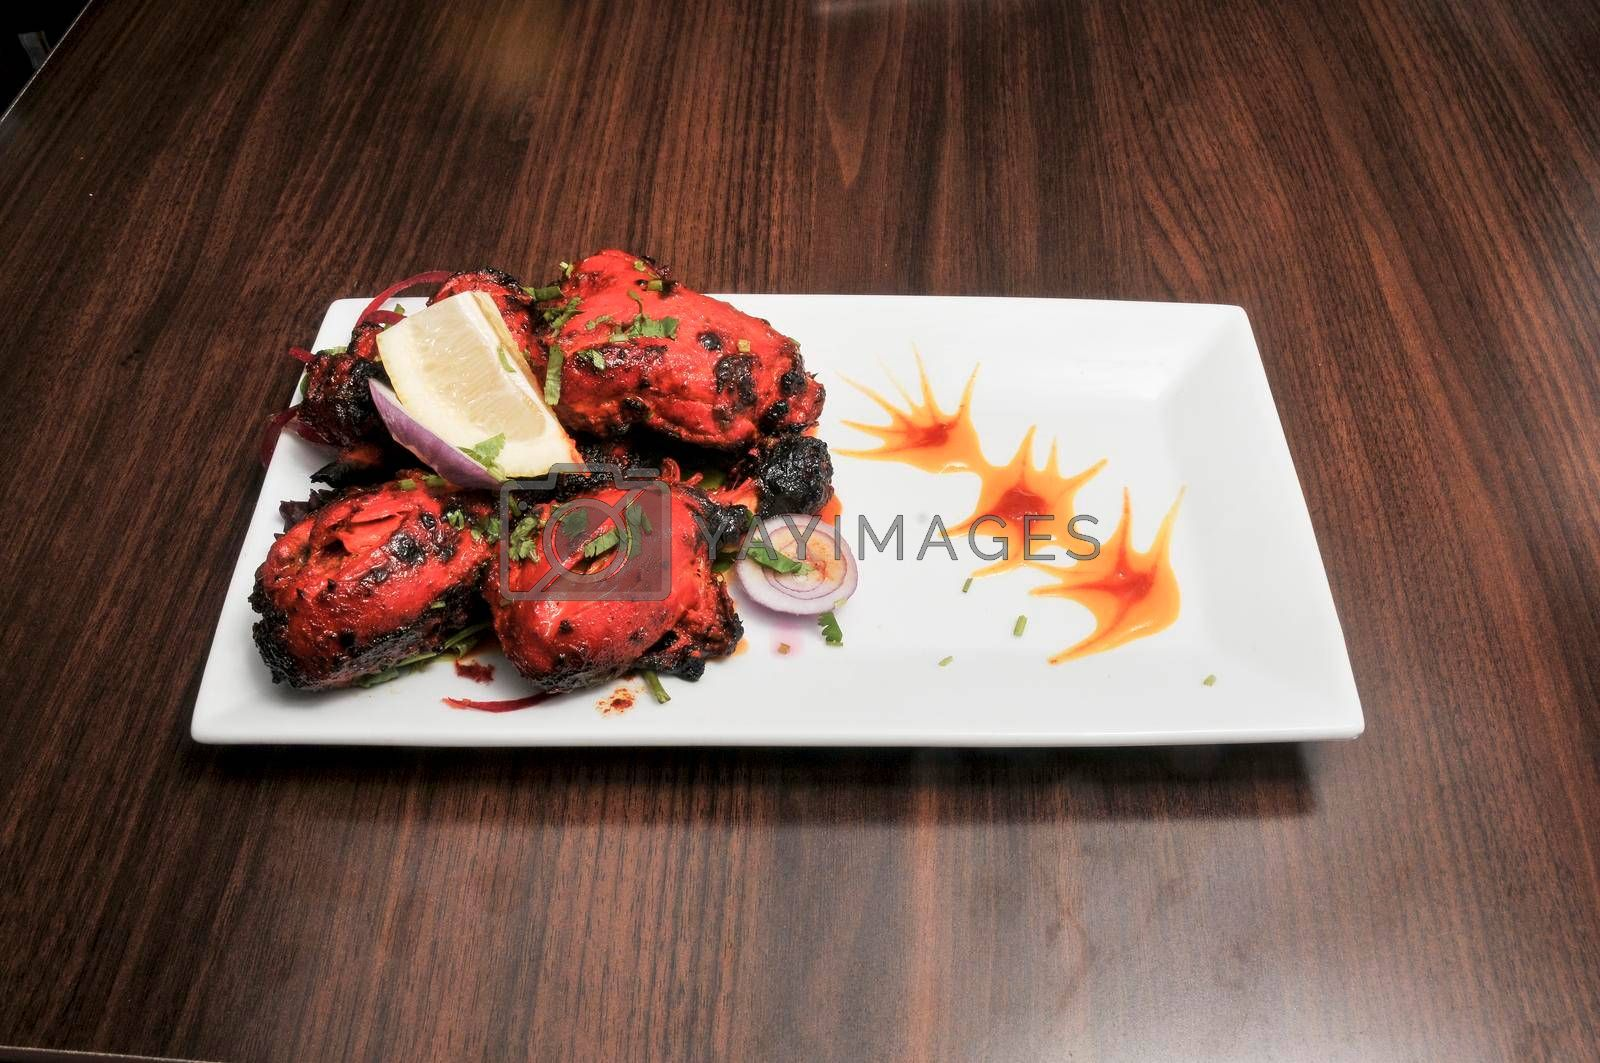 Traditional and authentic indian cuisine known as tandoori chicken